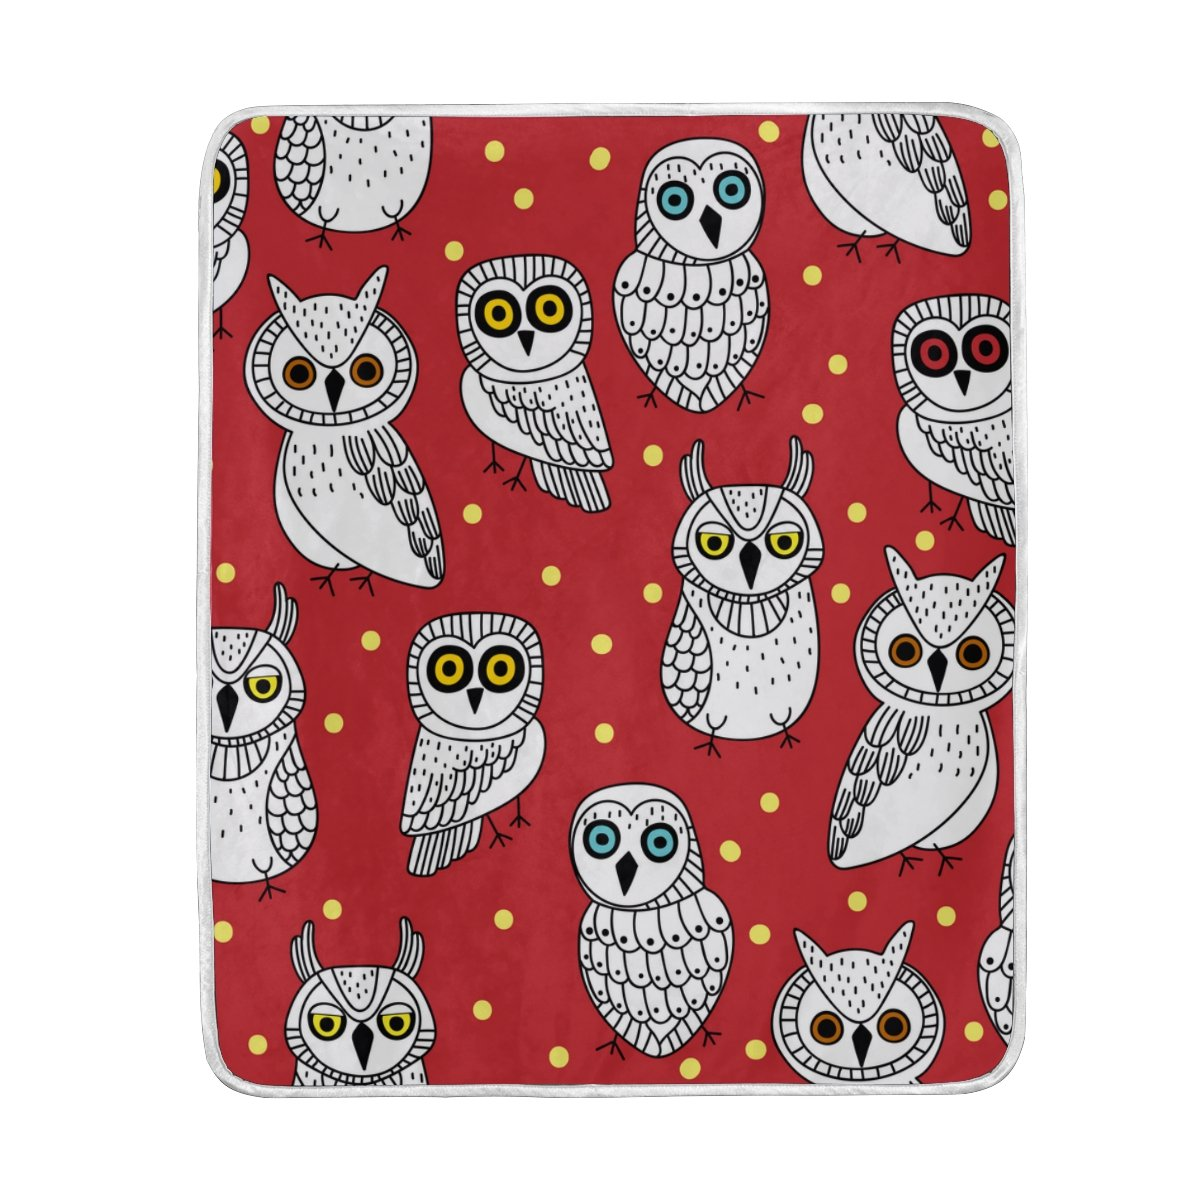 My Little Nest Warm Throw Blanket Cute Owl Lightweight Microfiber Soft Blanket Everyday Use for Bed Couch Sofa 50'' x 60''